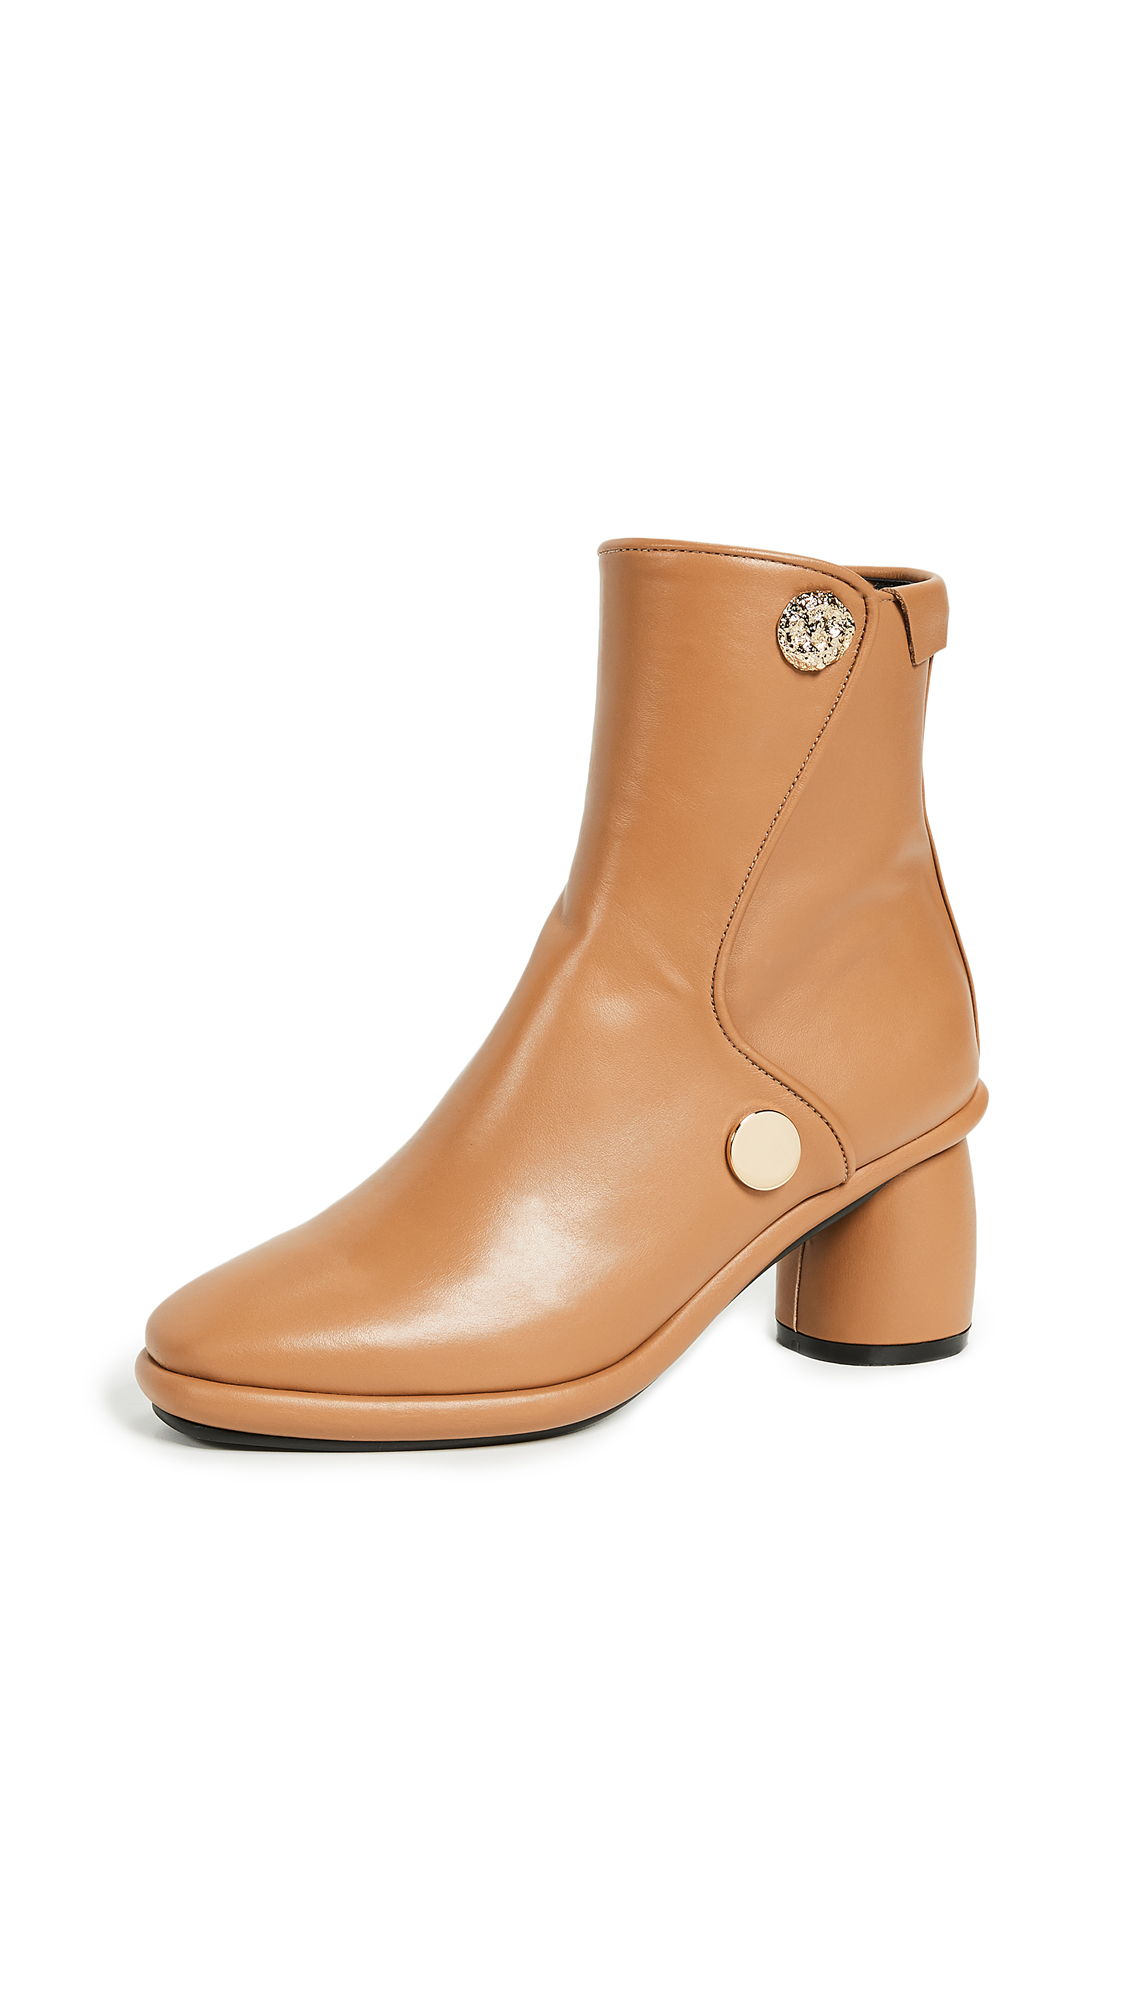 Reike Nen Curved Middle Ankle Booties - Camel